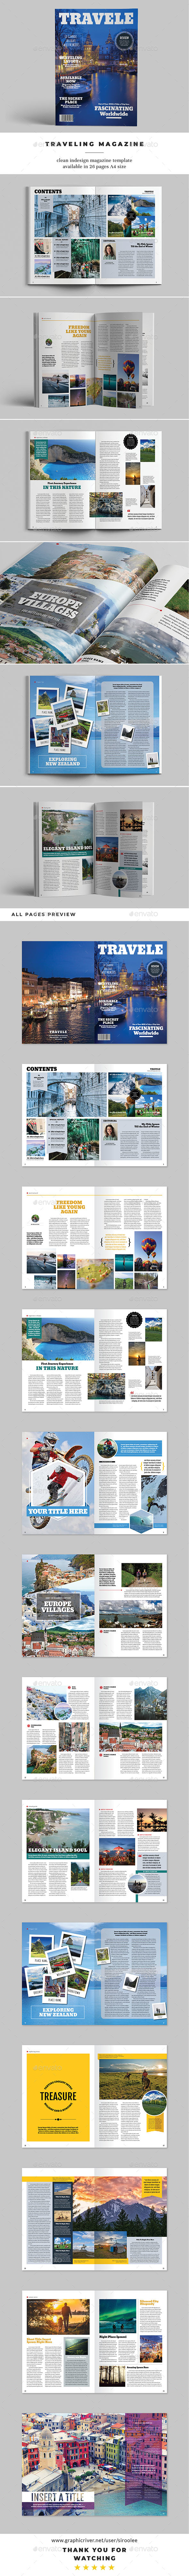 A4 Traveling Magazine - Magazines Print Templates